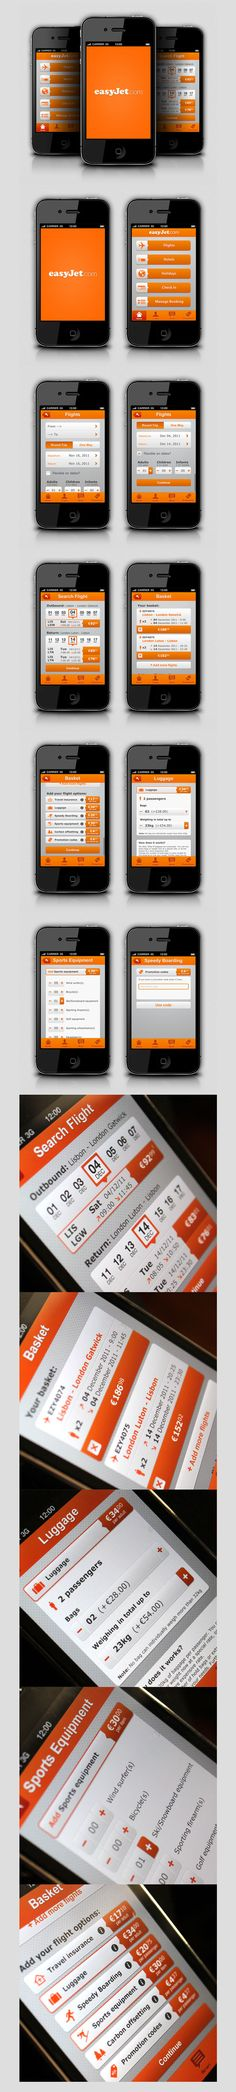 EasyJet iPhone application by Joana Bochecha, via Behance  ***  This is a project developed by choice, with the personal goal of increase the user interfaces developing and graphics designs skills. There wasn't any client request and the brand was chosen randomly.